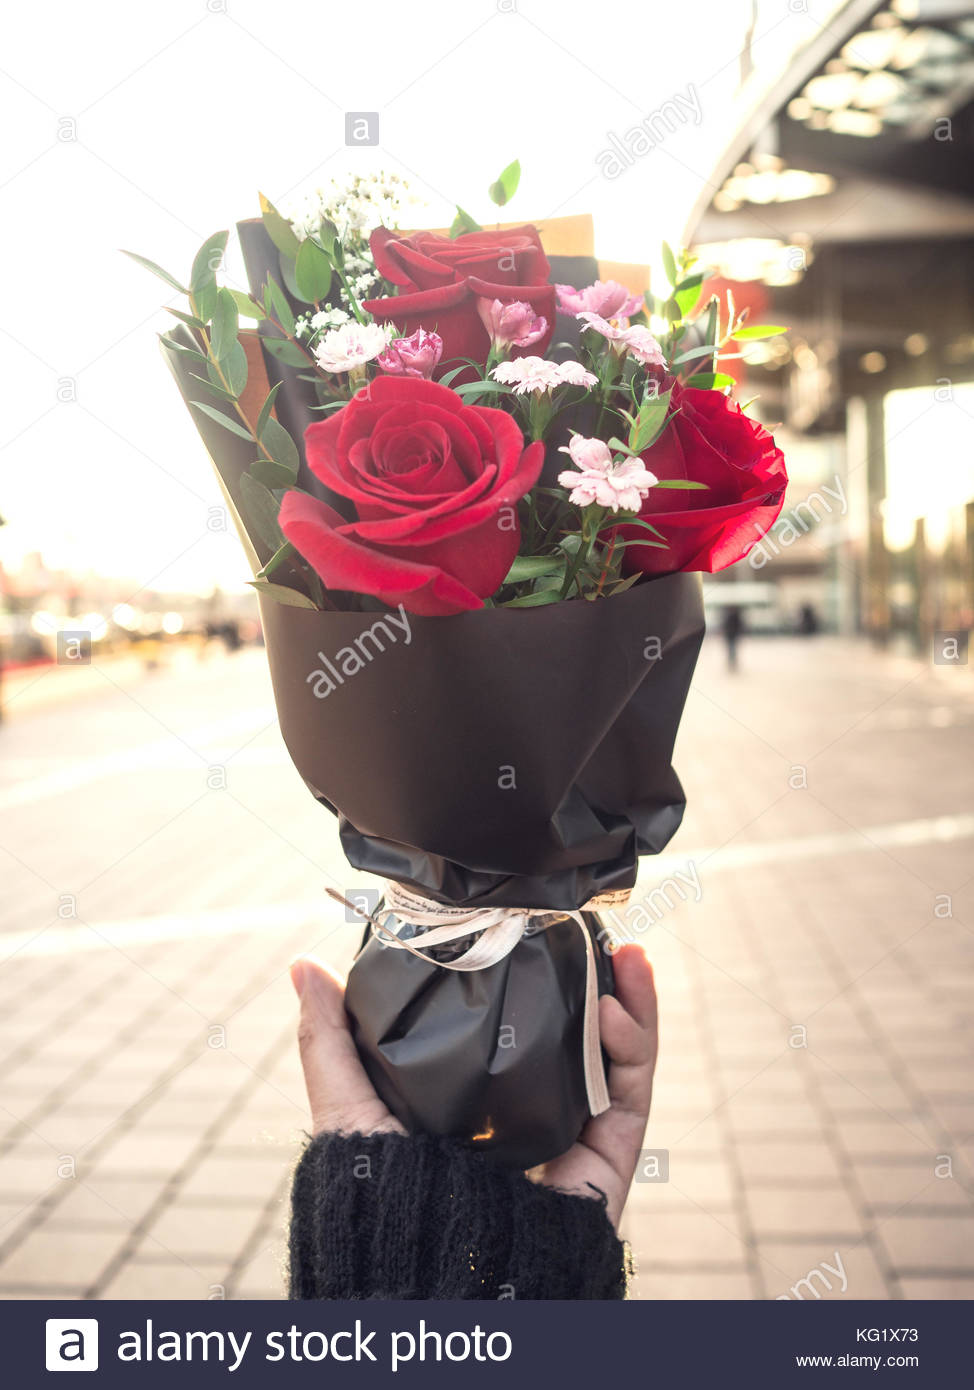 Red roses in hand - Stock Image